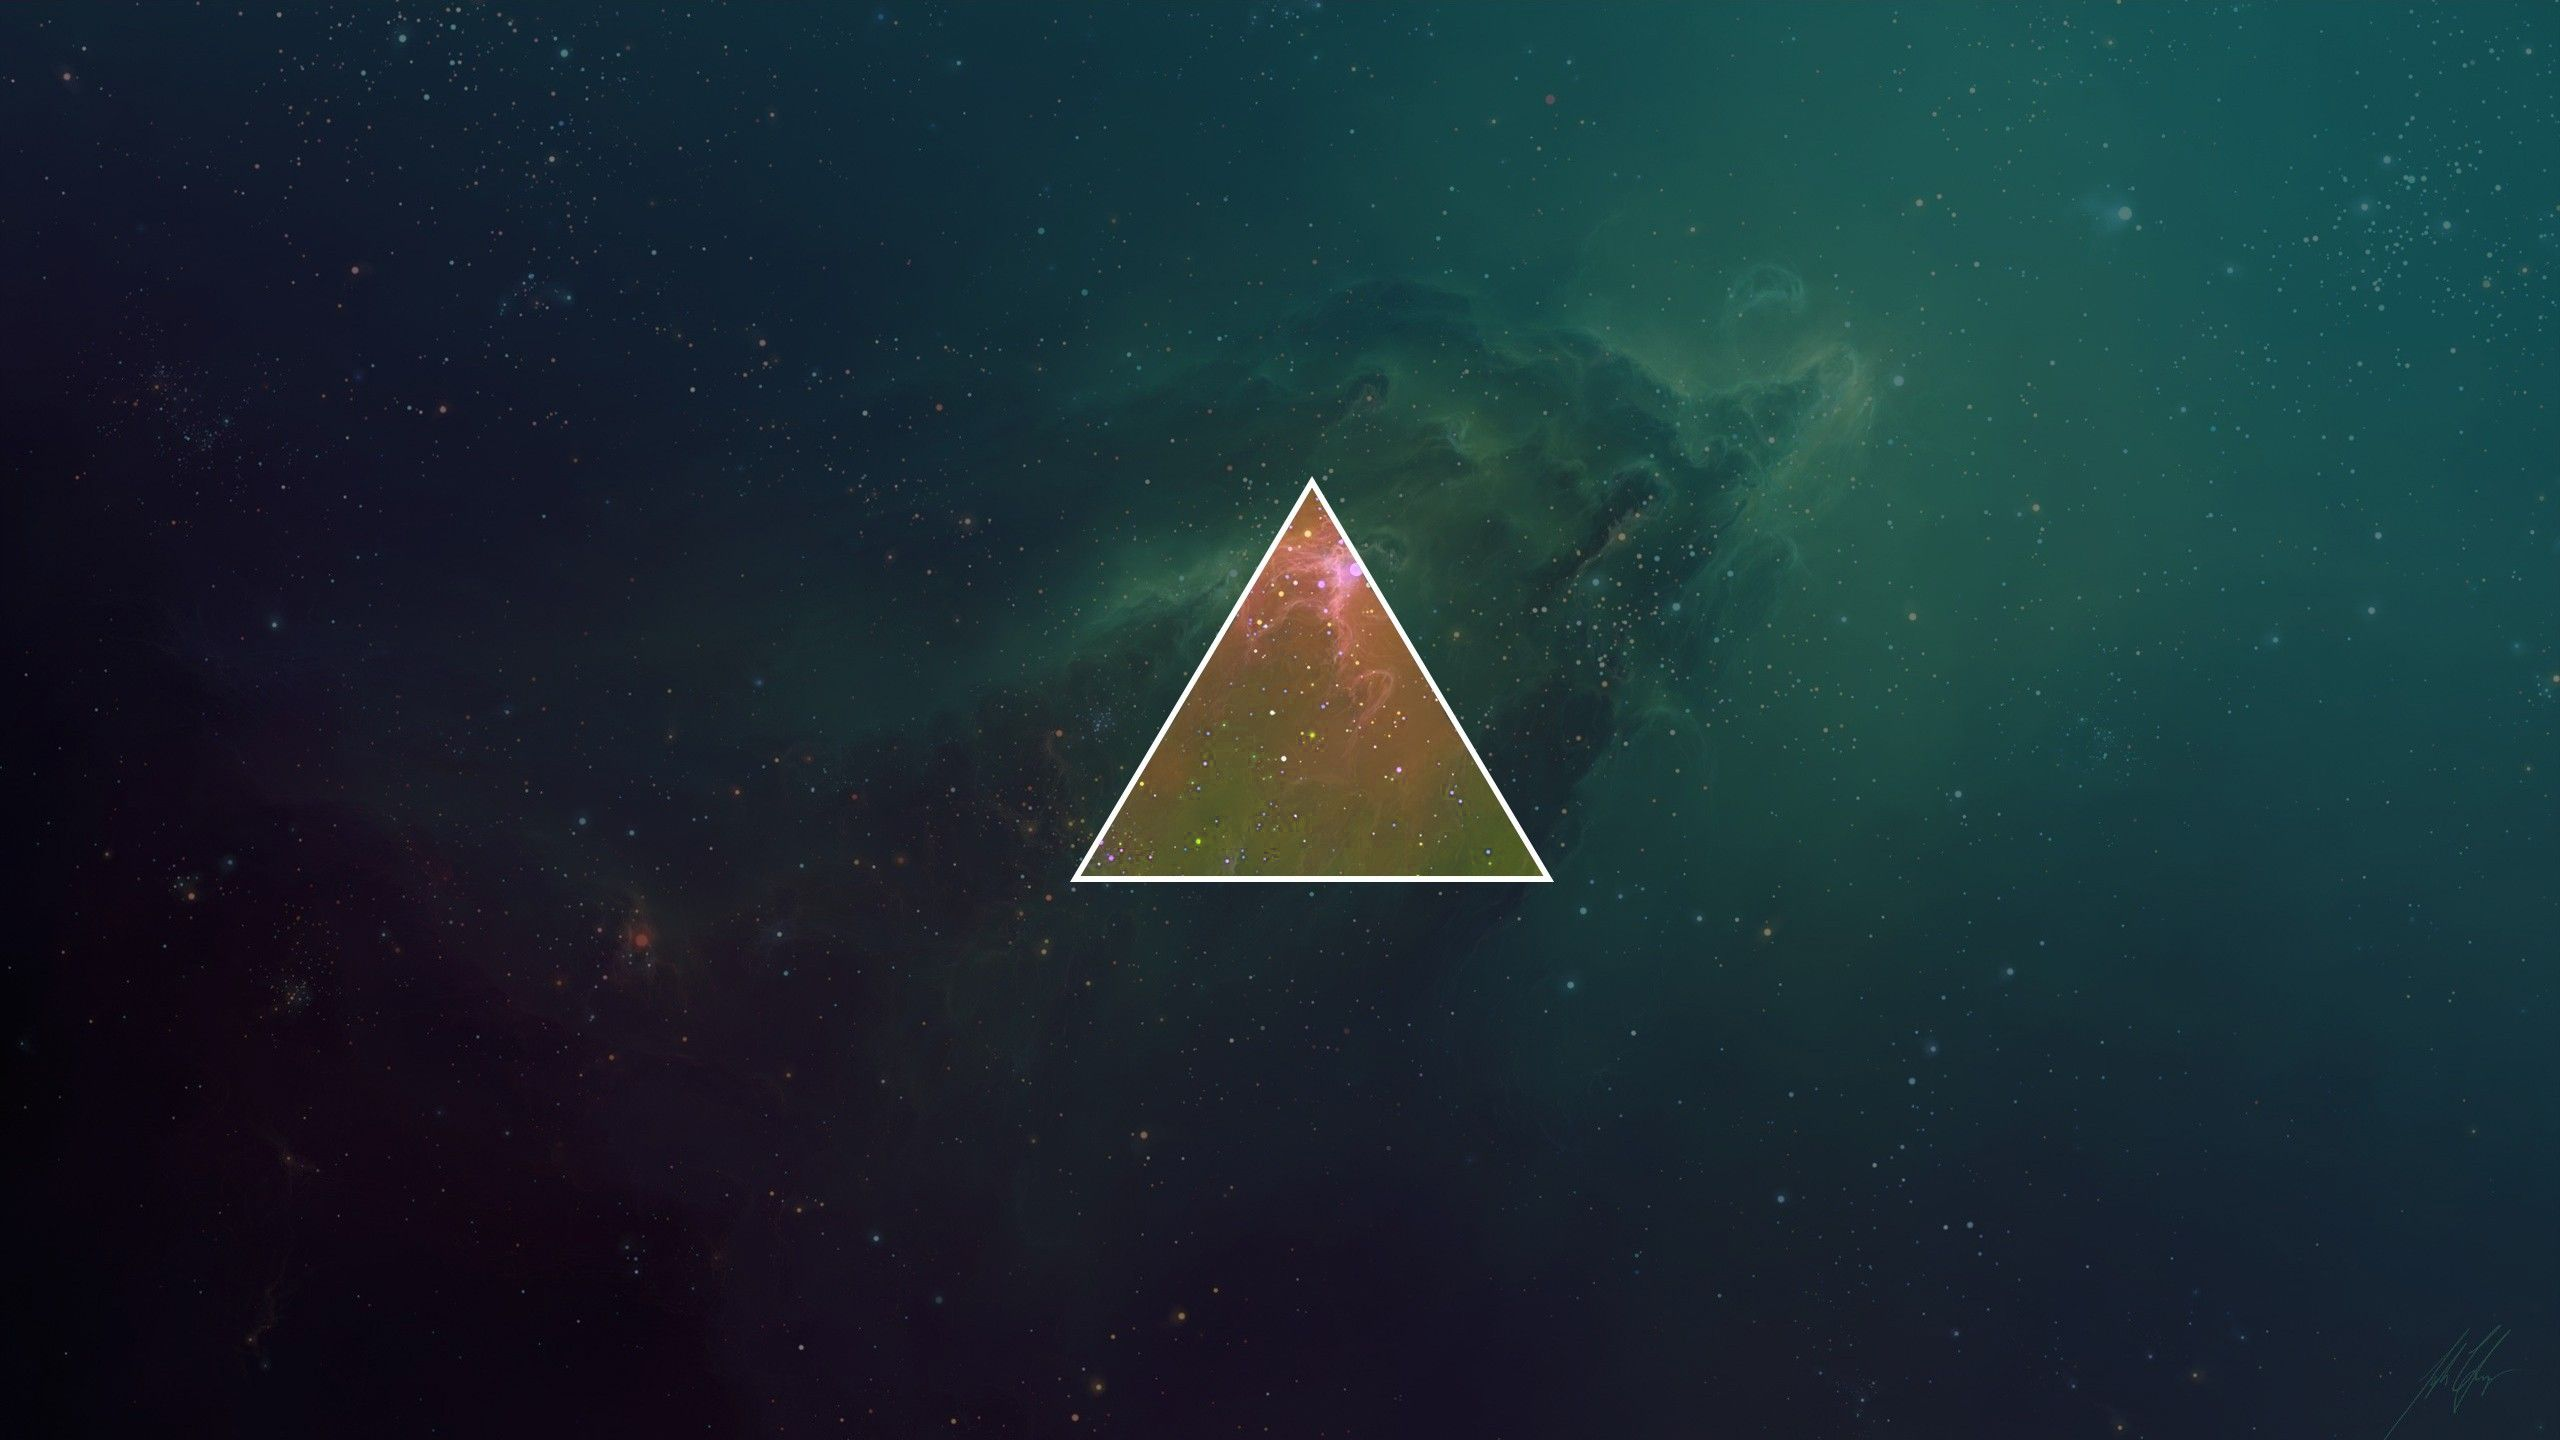 Hd wallpaper hipster - Galaxy Triangles Skies Hipster Photography Minimalism Free Iphone Or Android Full Hd Wallpaper